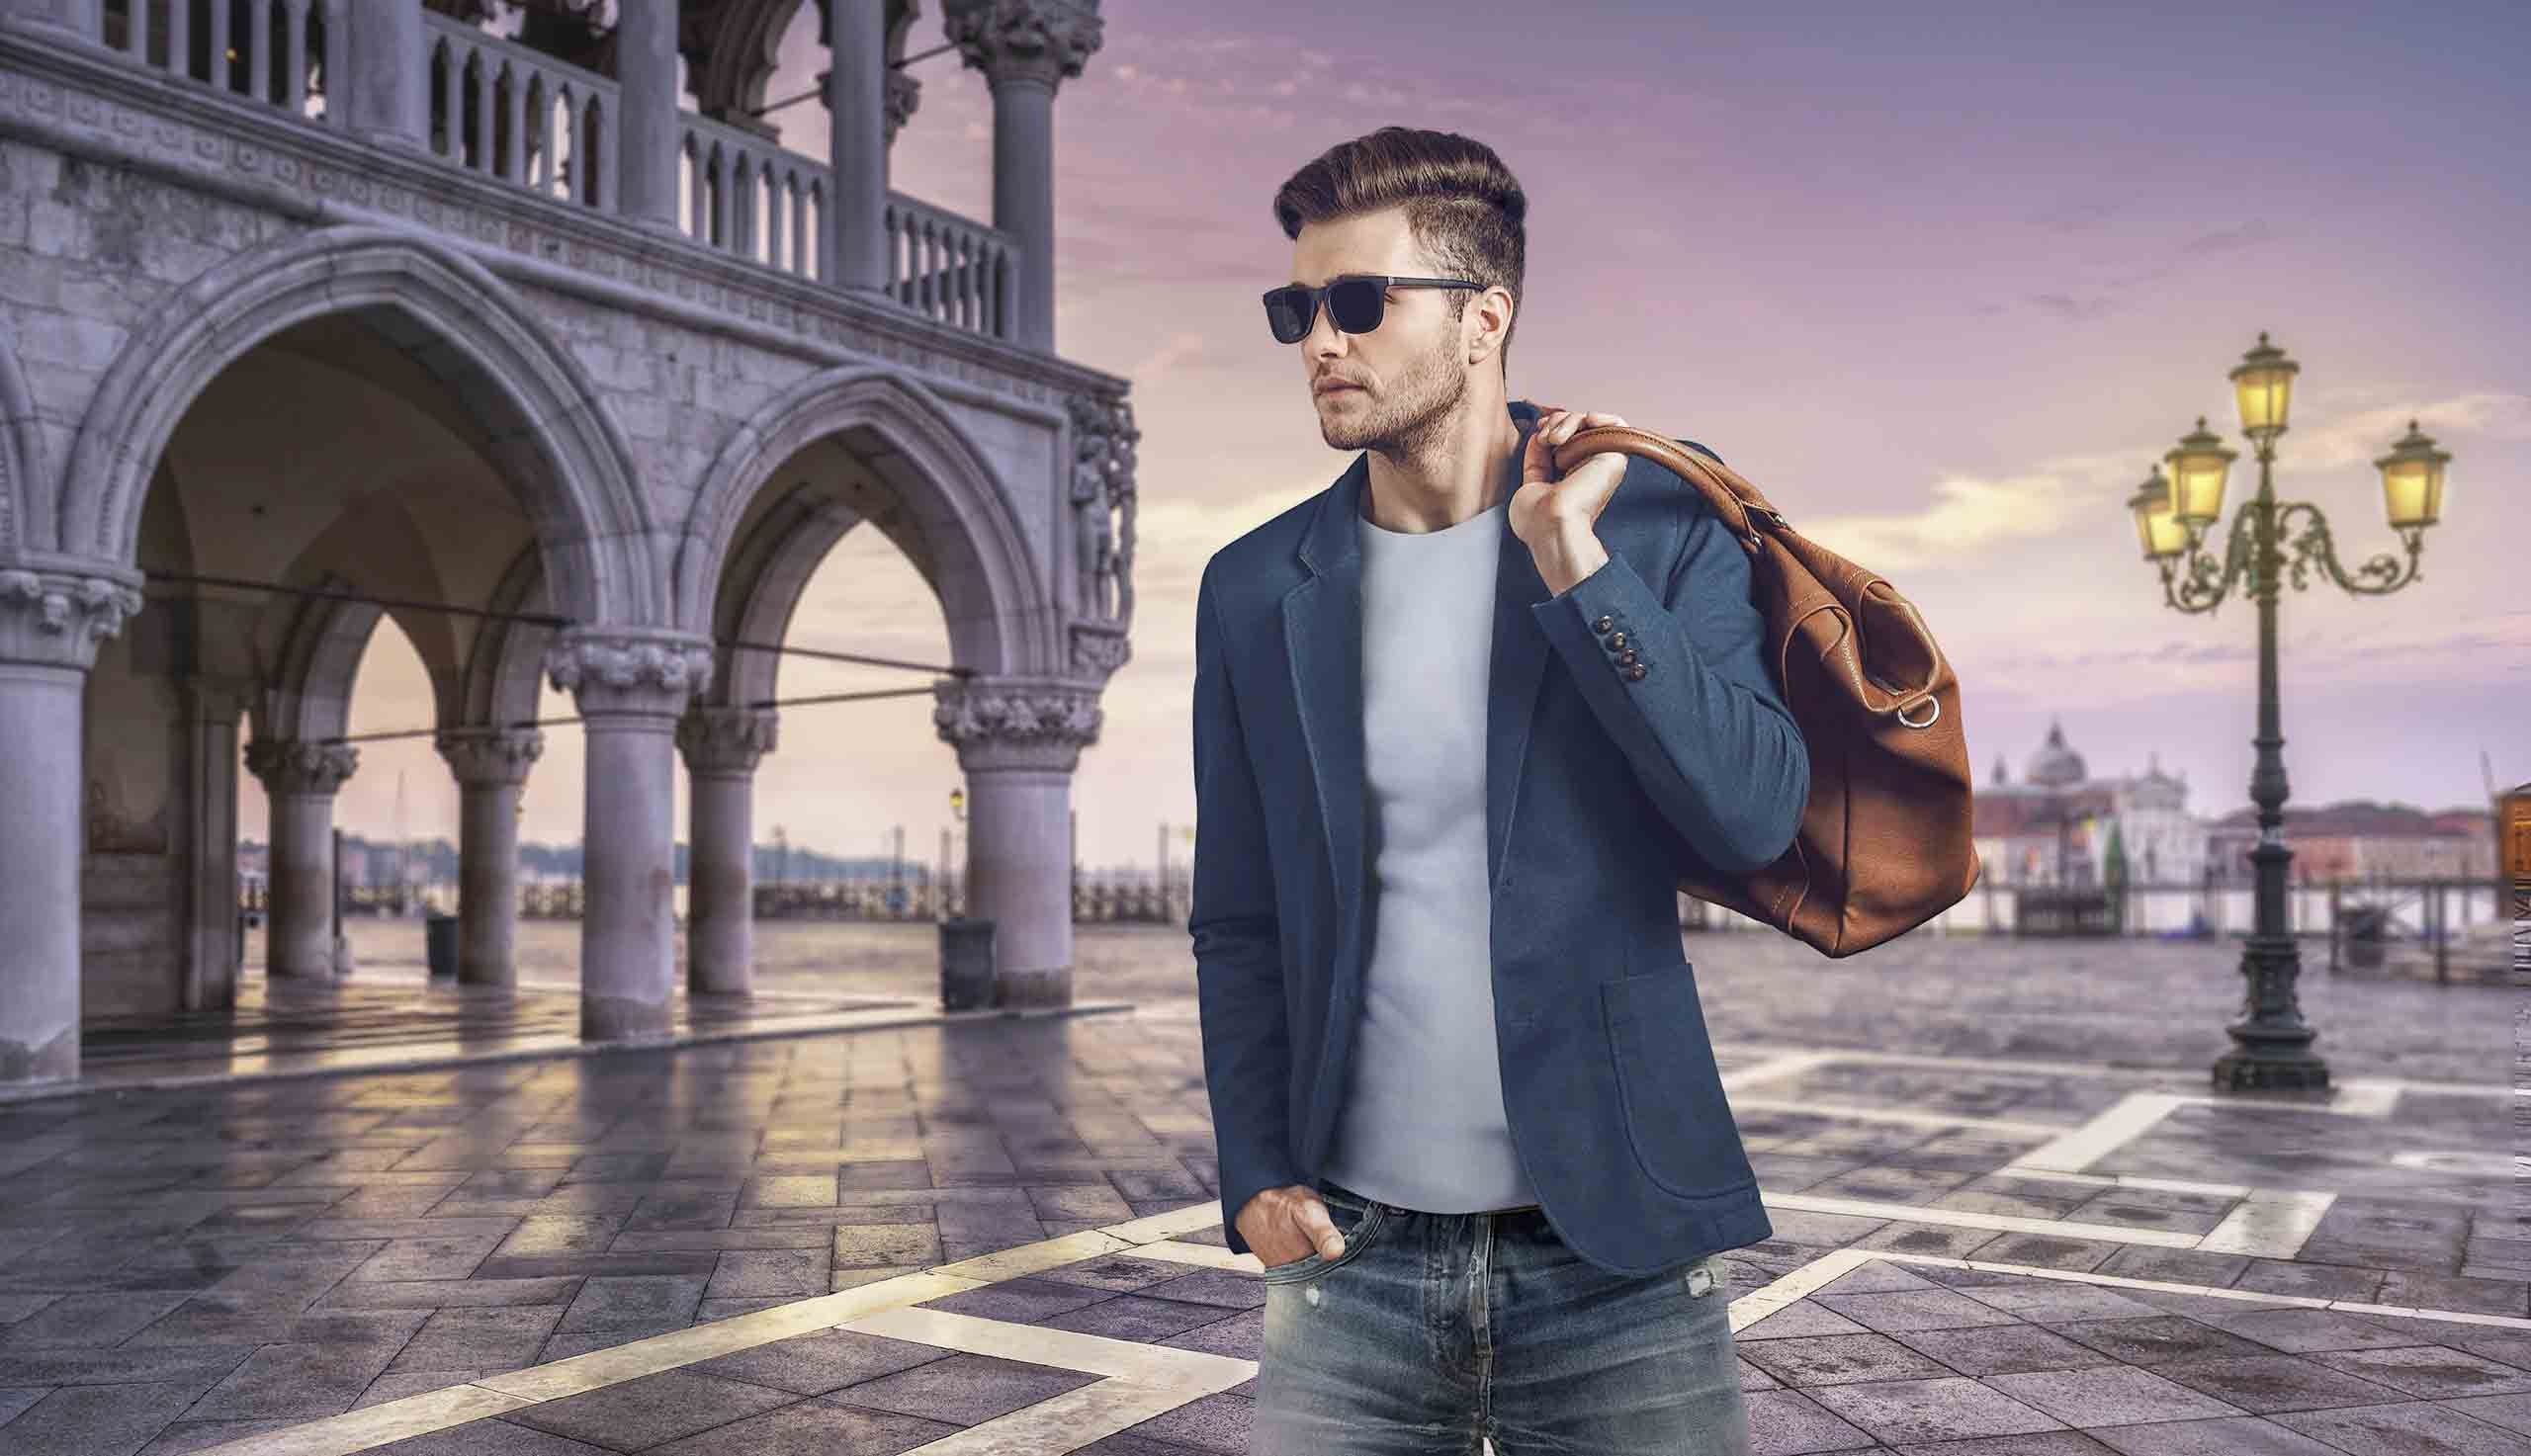 IANNALFO & SGARIGLIA EXPLORE YOUR INNER STYLE Casual cloth for men